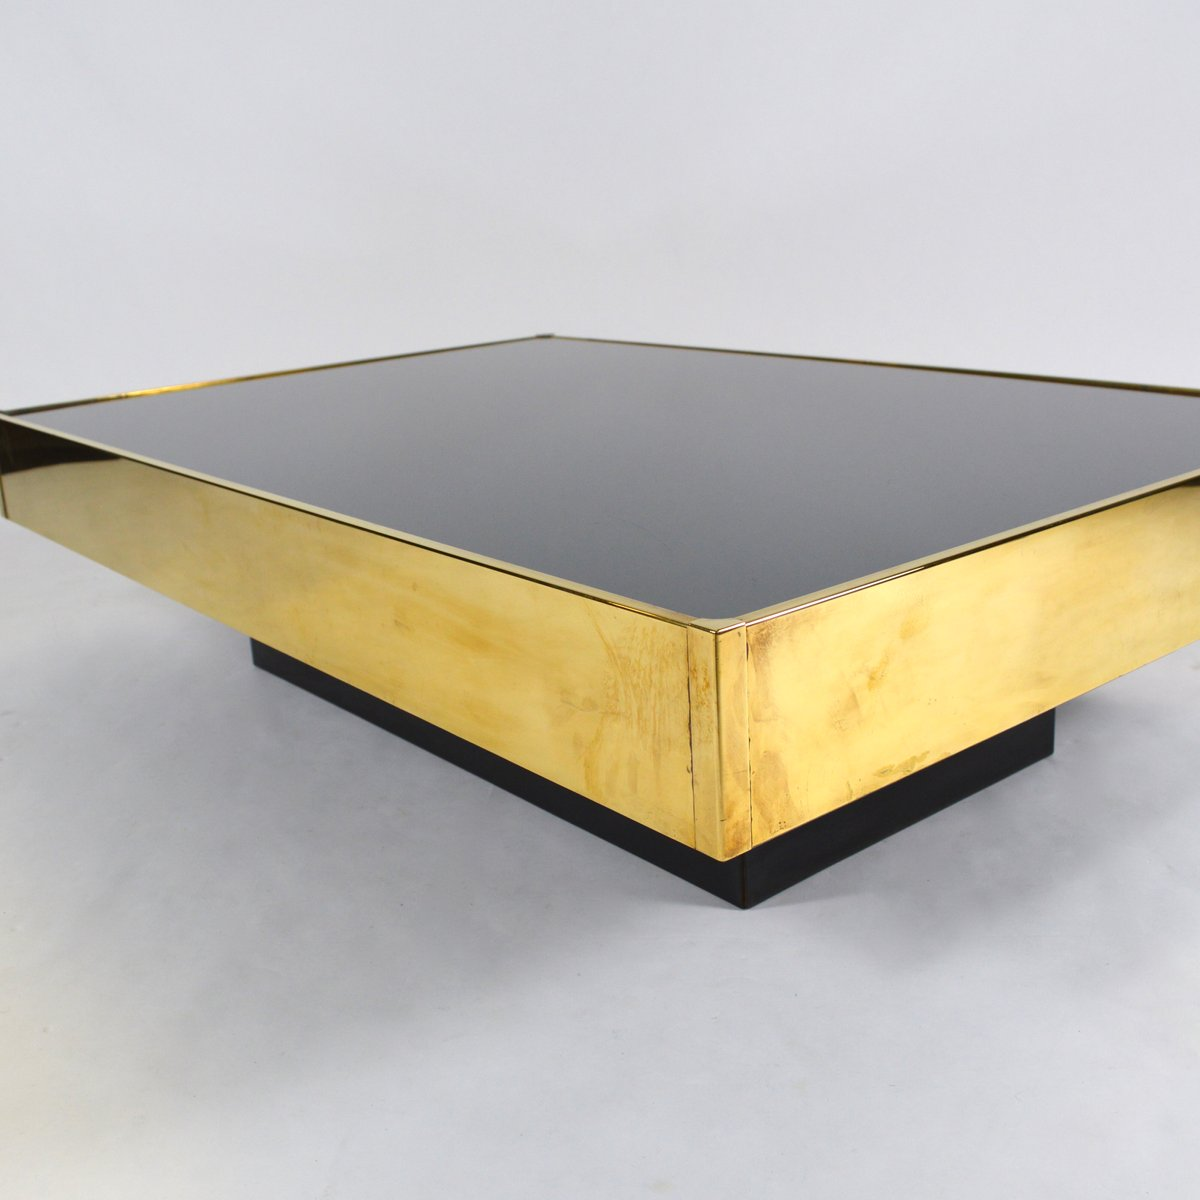 French brass mirror glass coffee table by willy rizzo for French glass coffee table